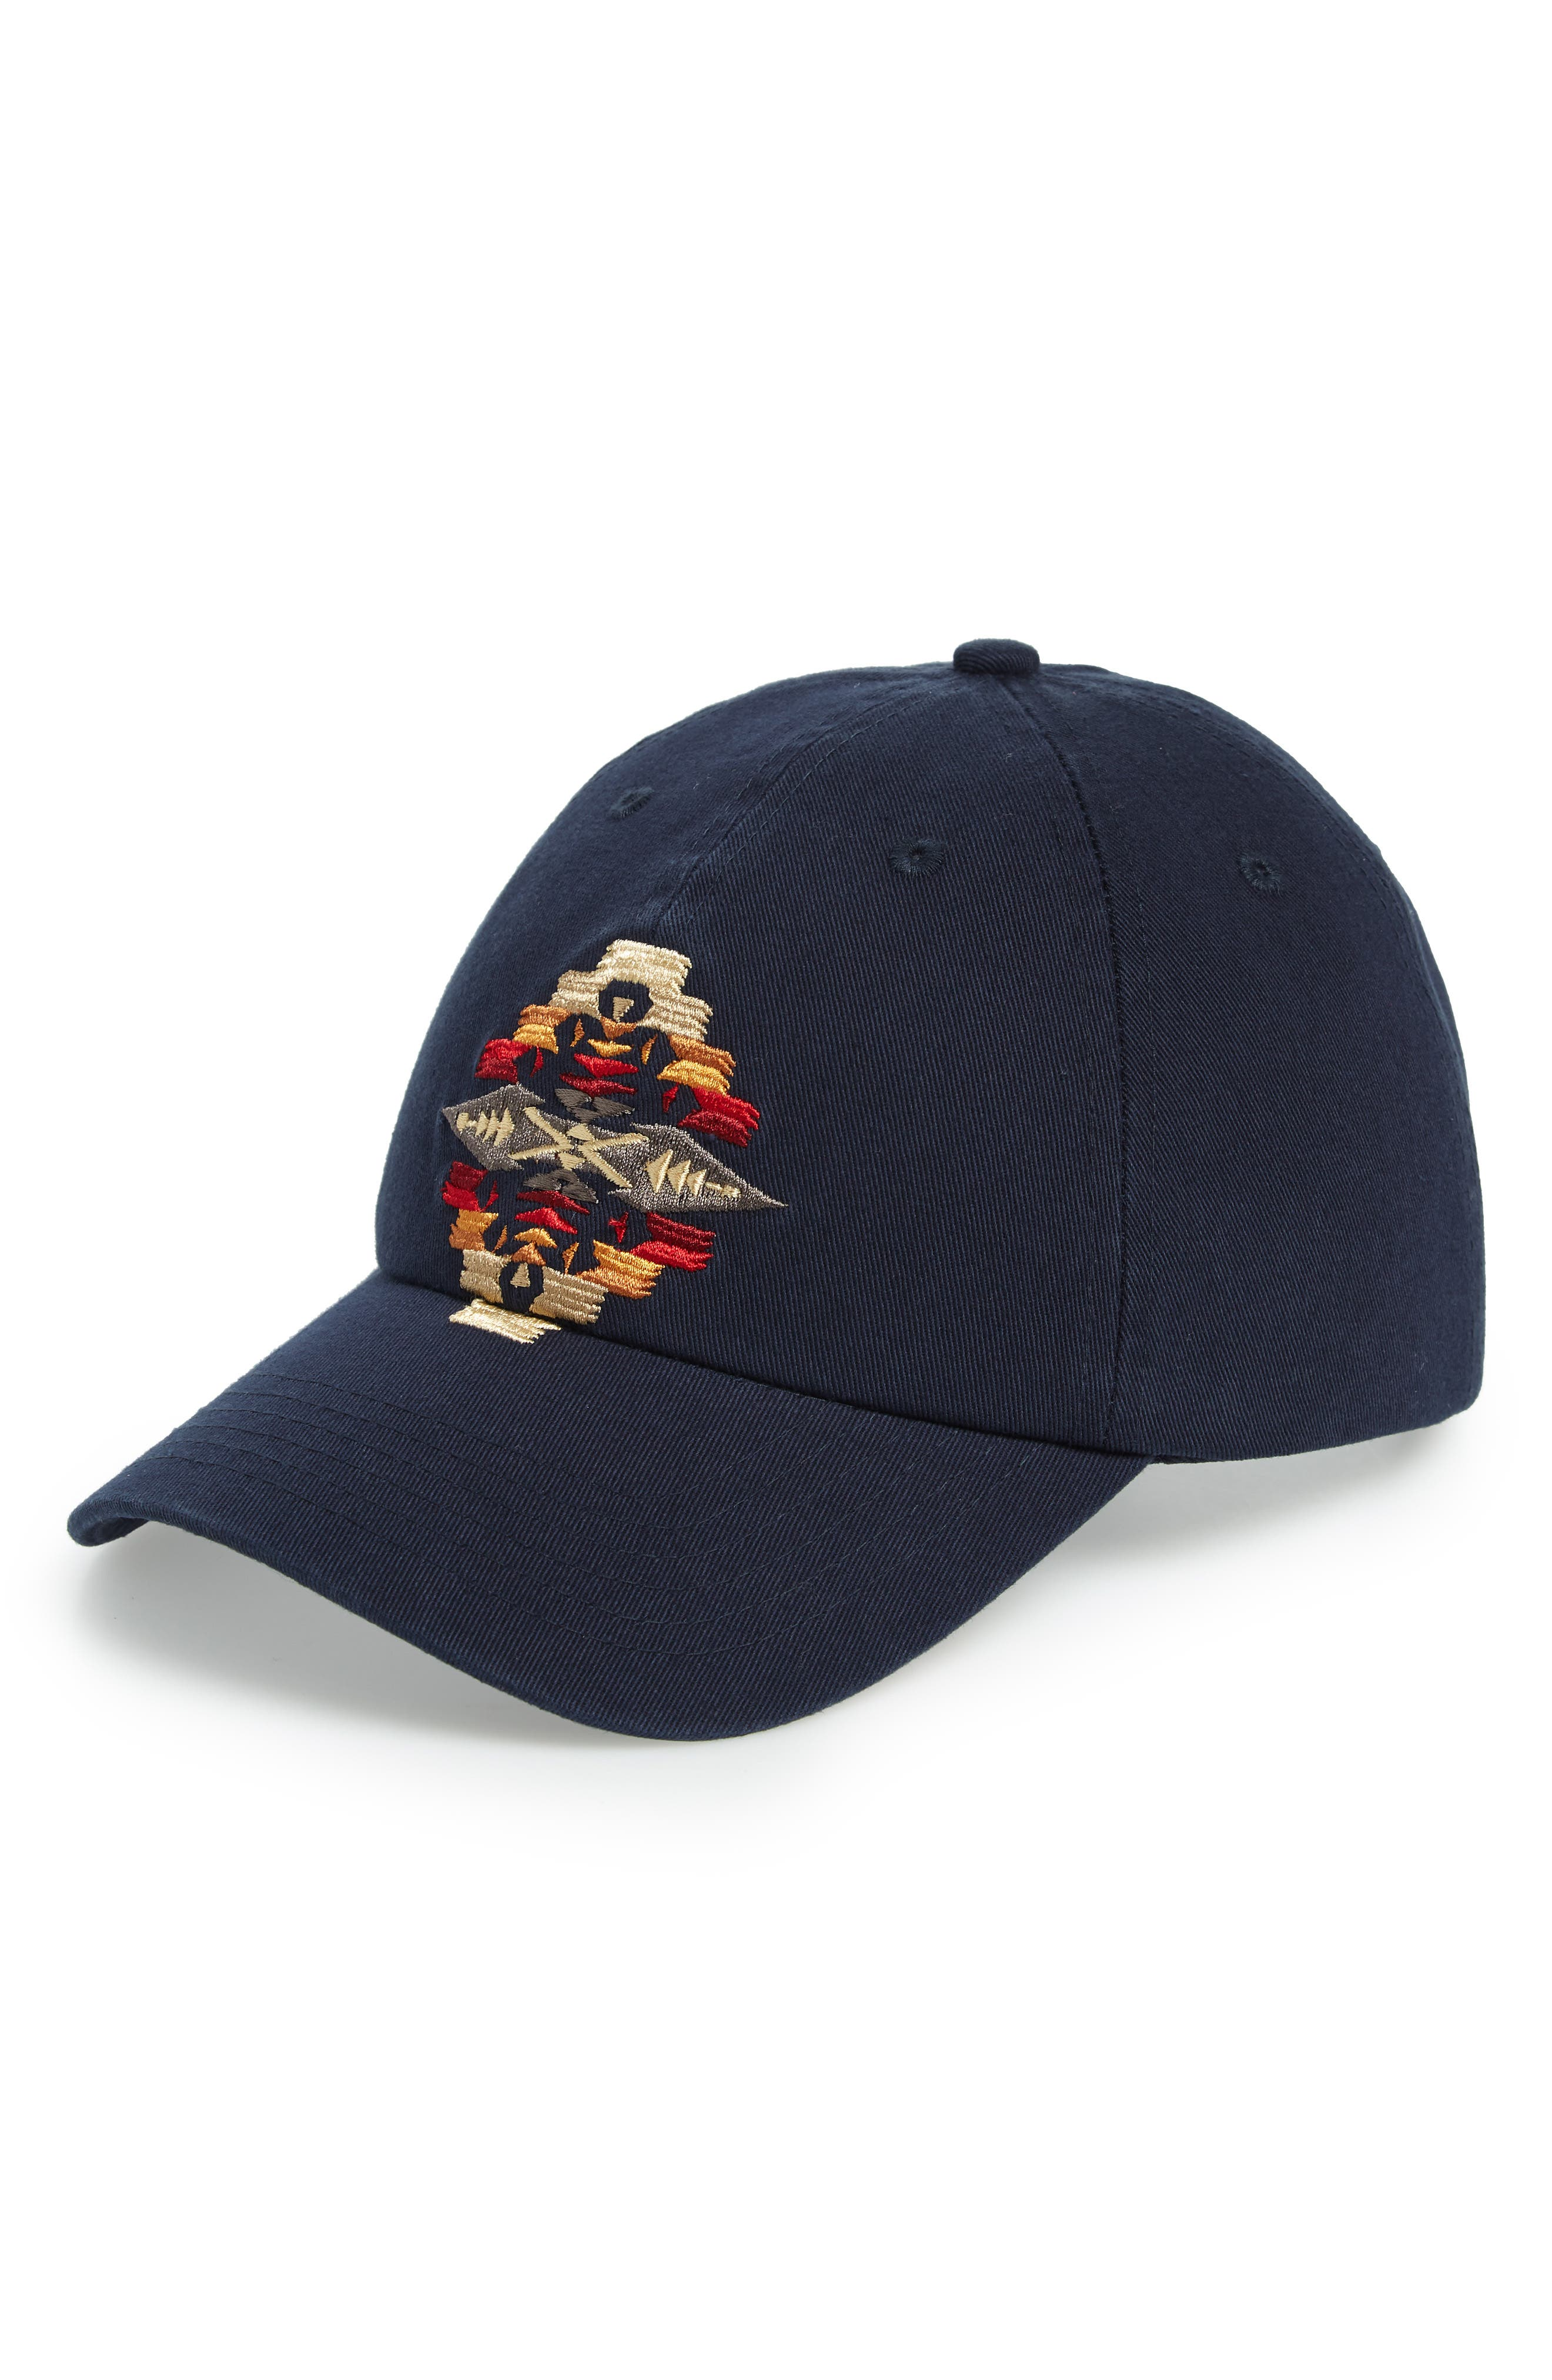 Tucson Embroidered Cap,                         Main,                         color, NAVY